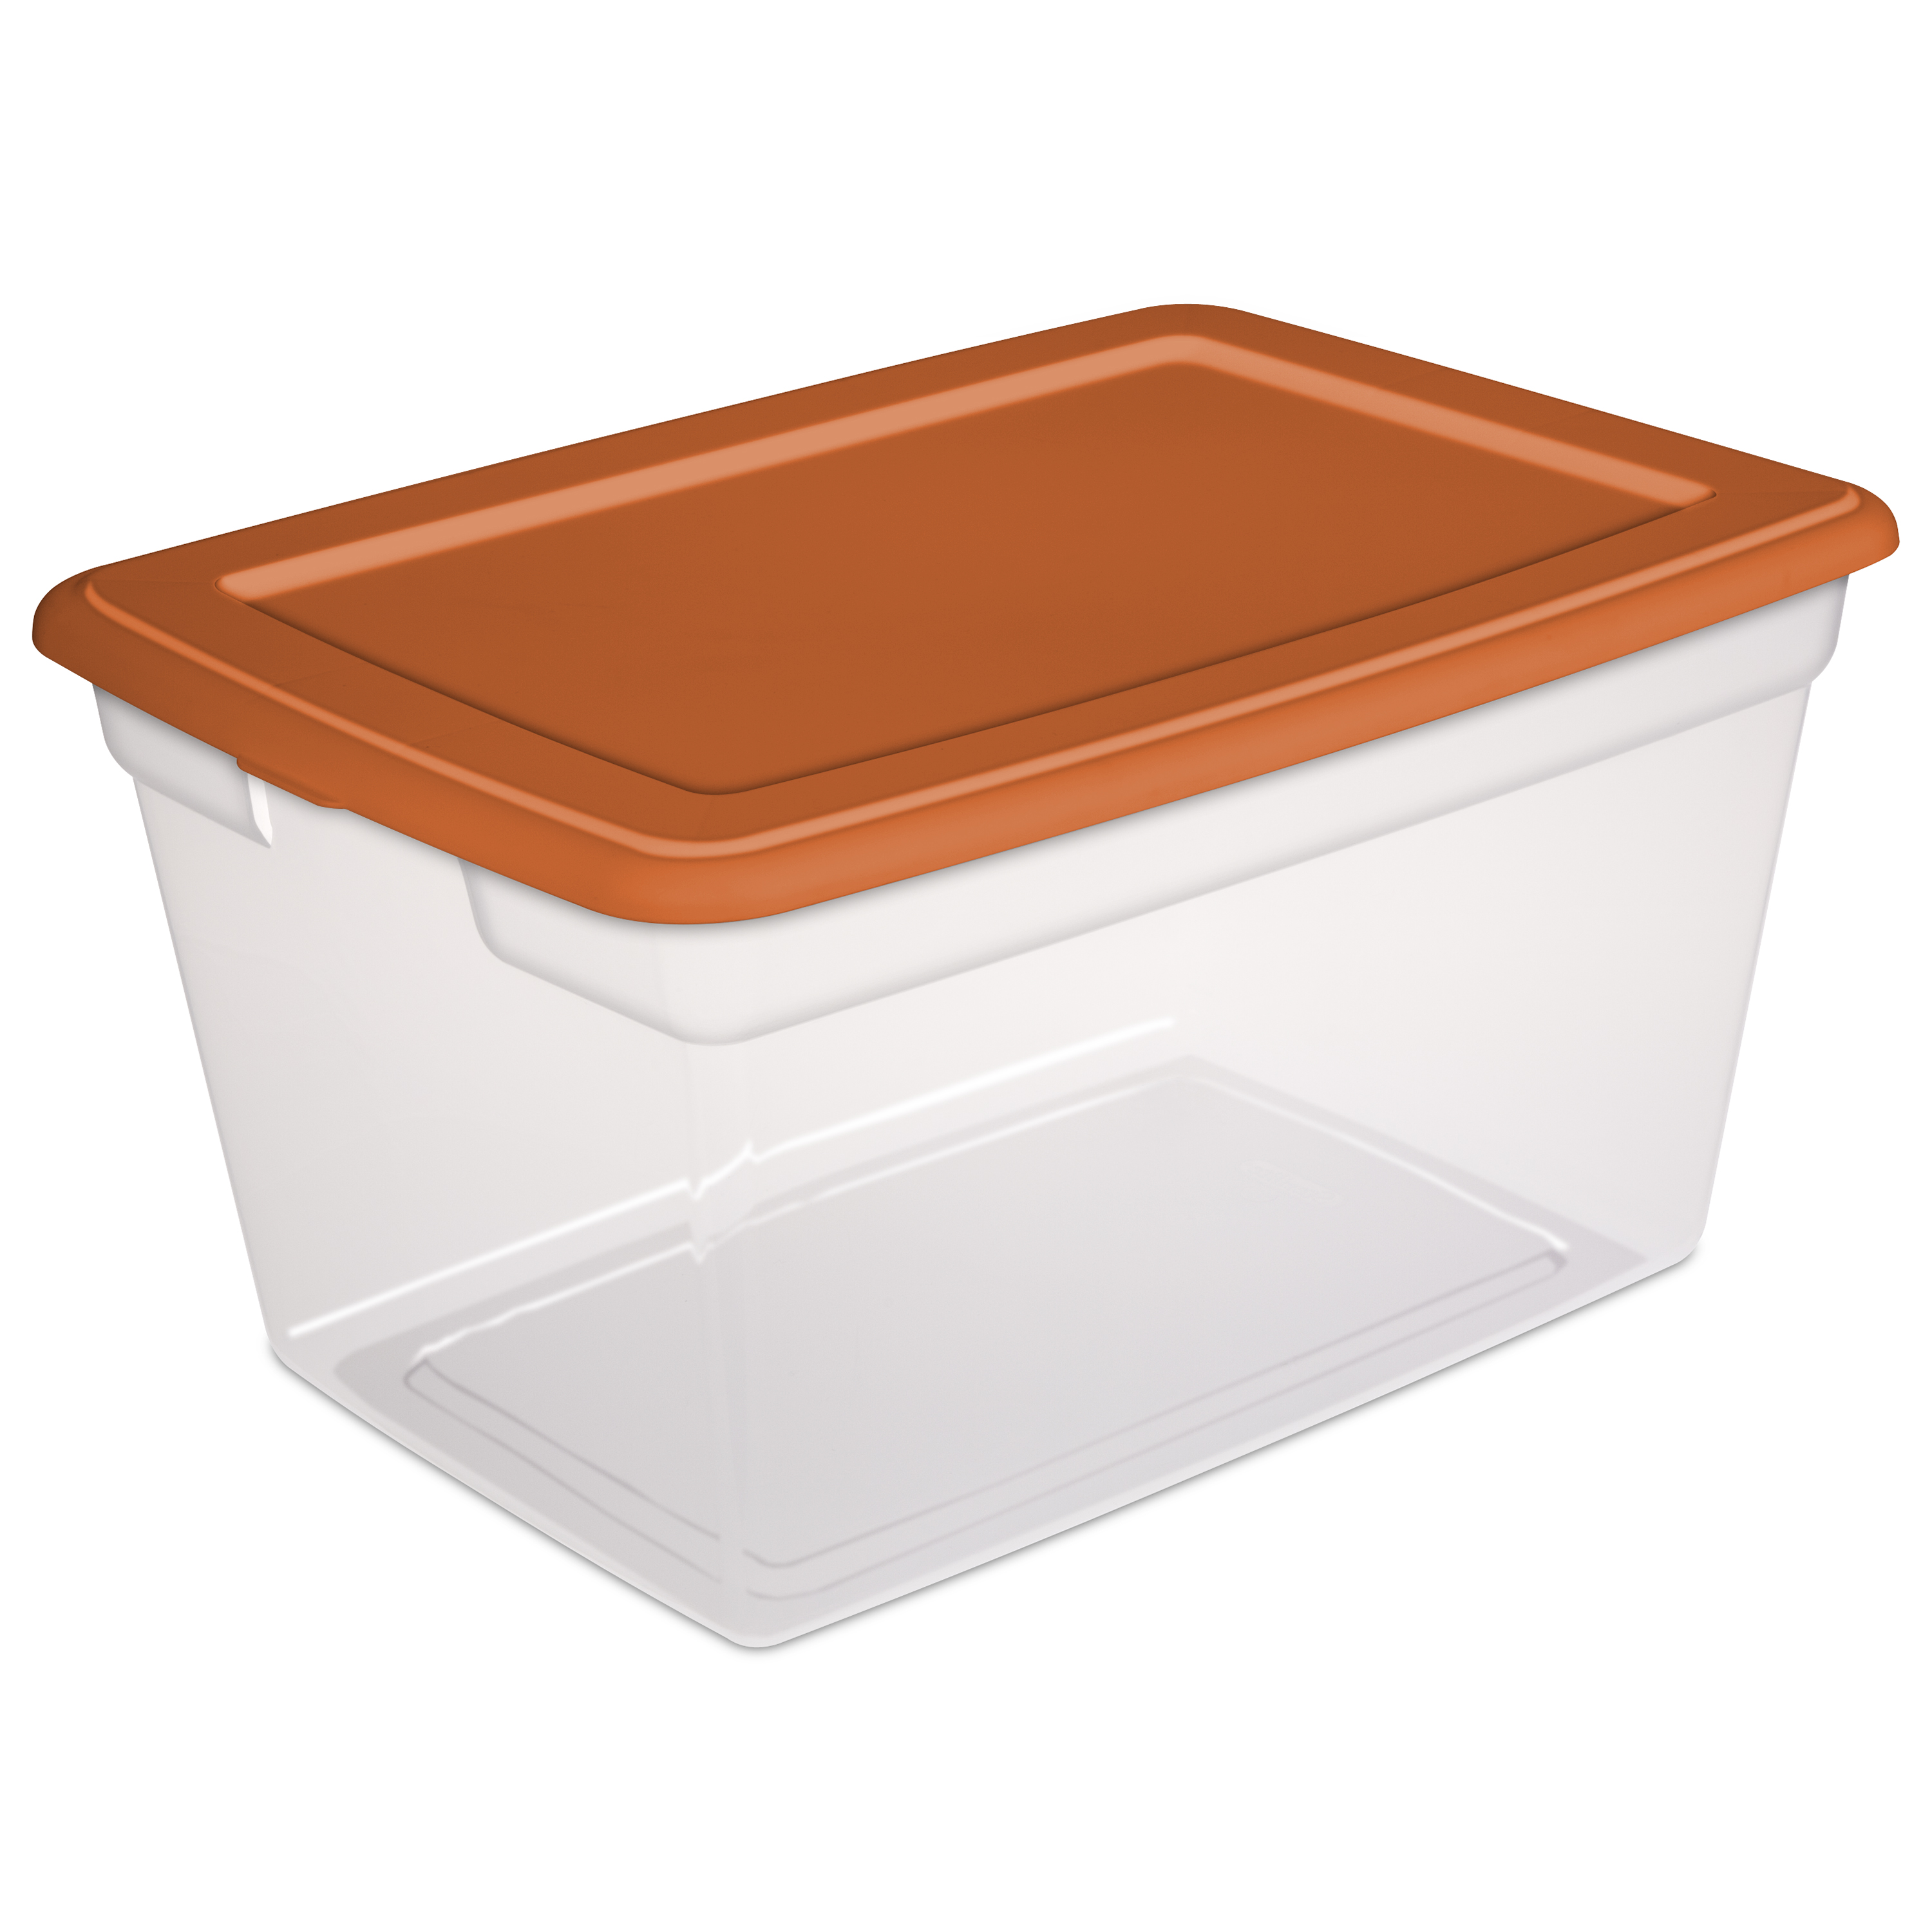 Sterilite 58 Quart Storage Box -Turmeric